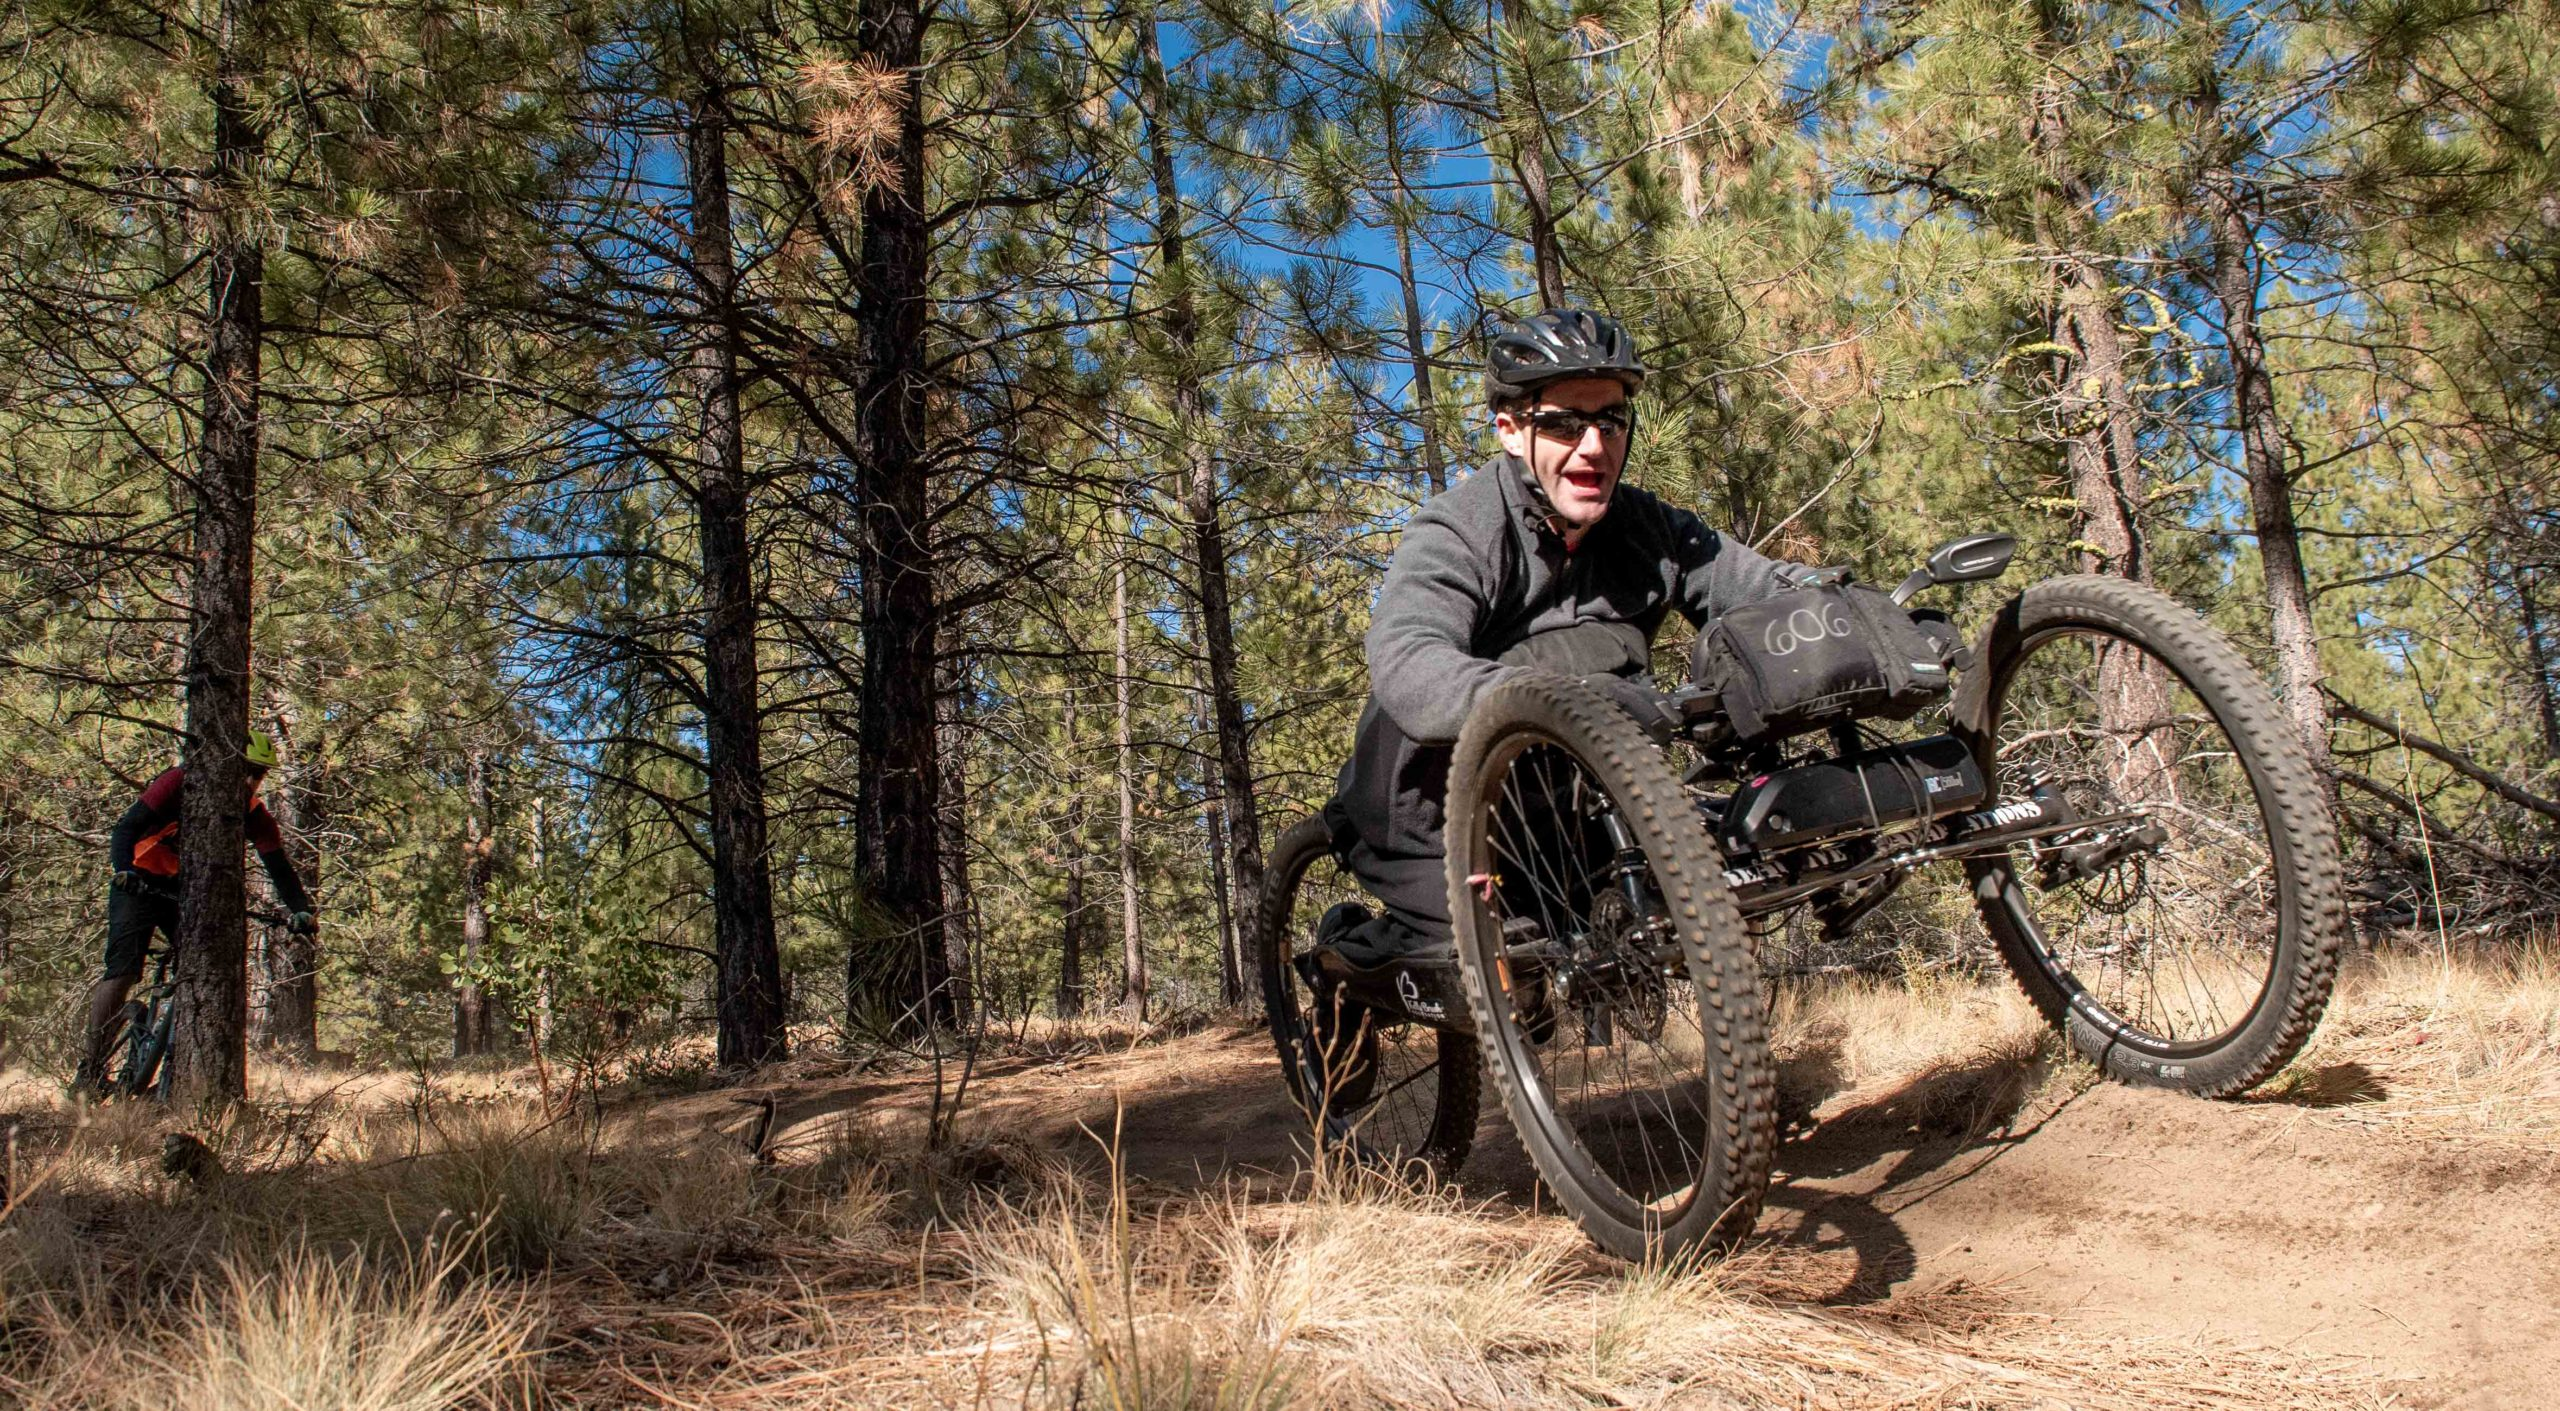 off road handcyclist smiling and riding on a trail